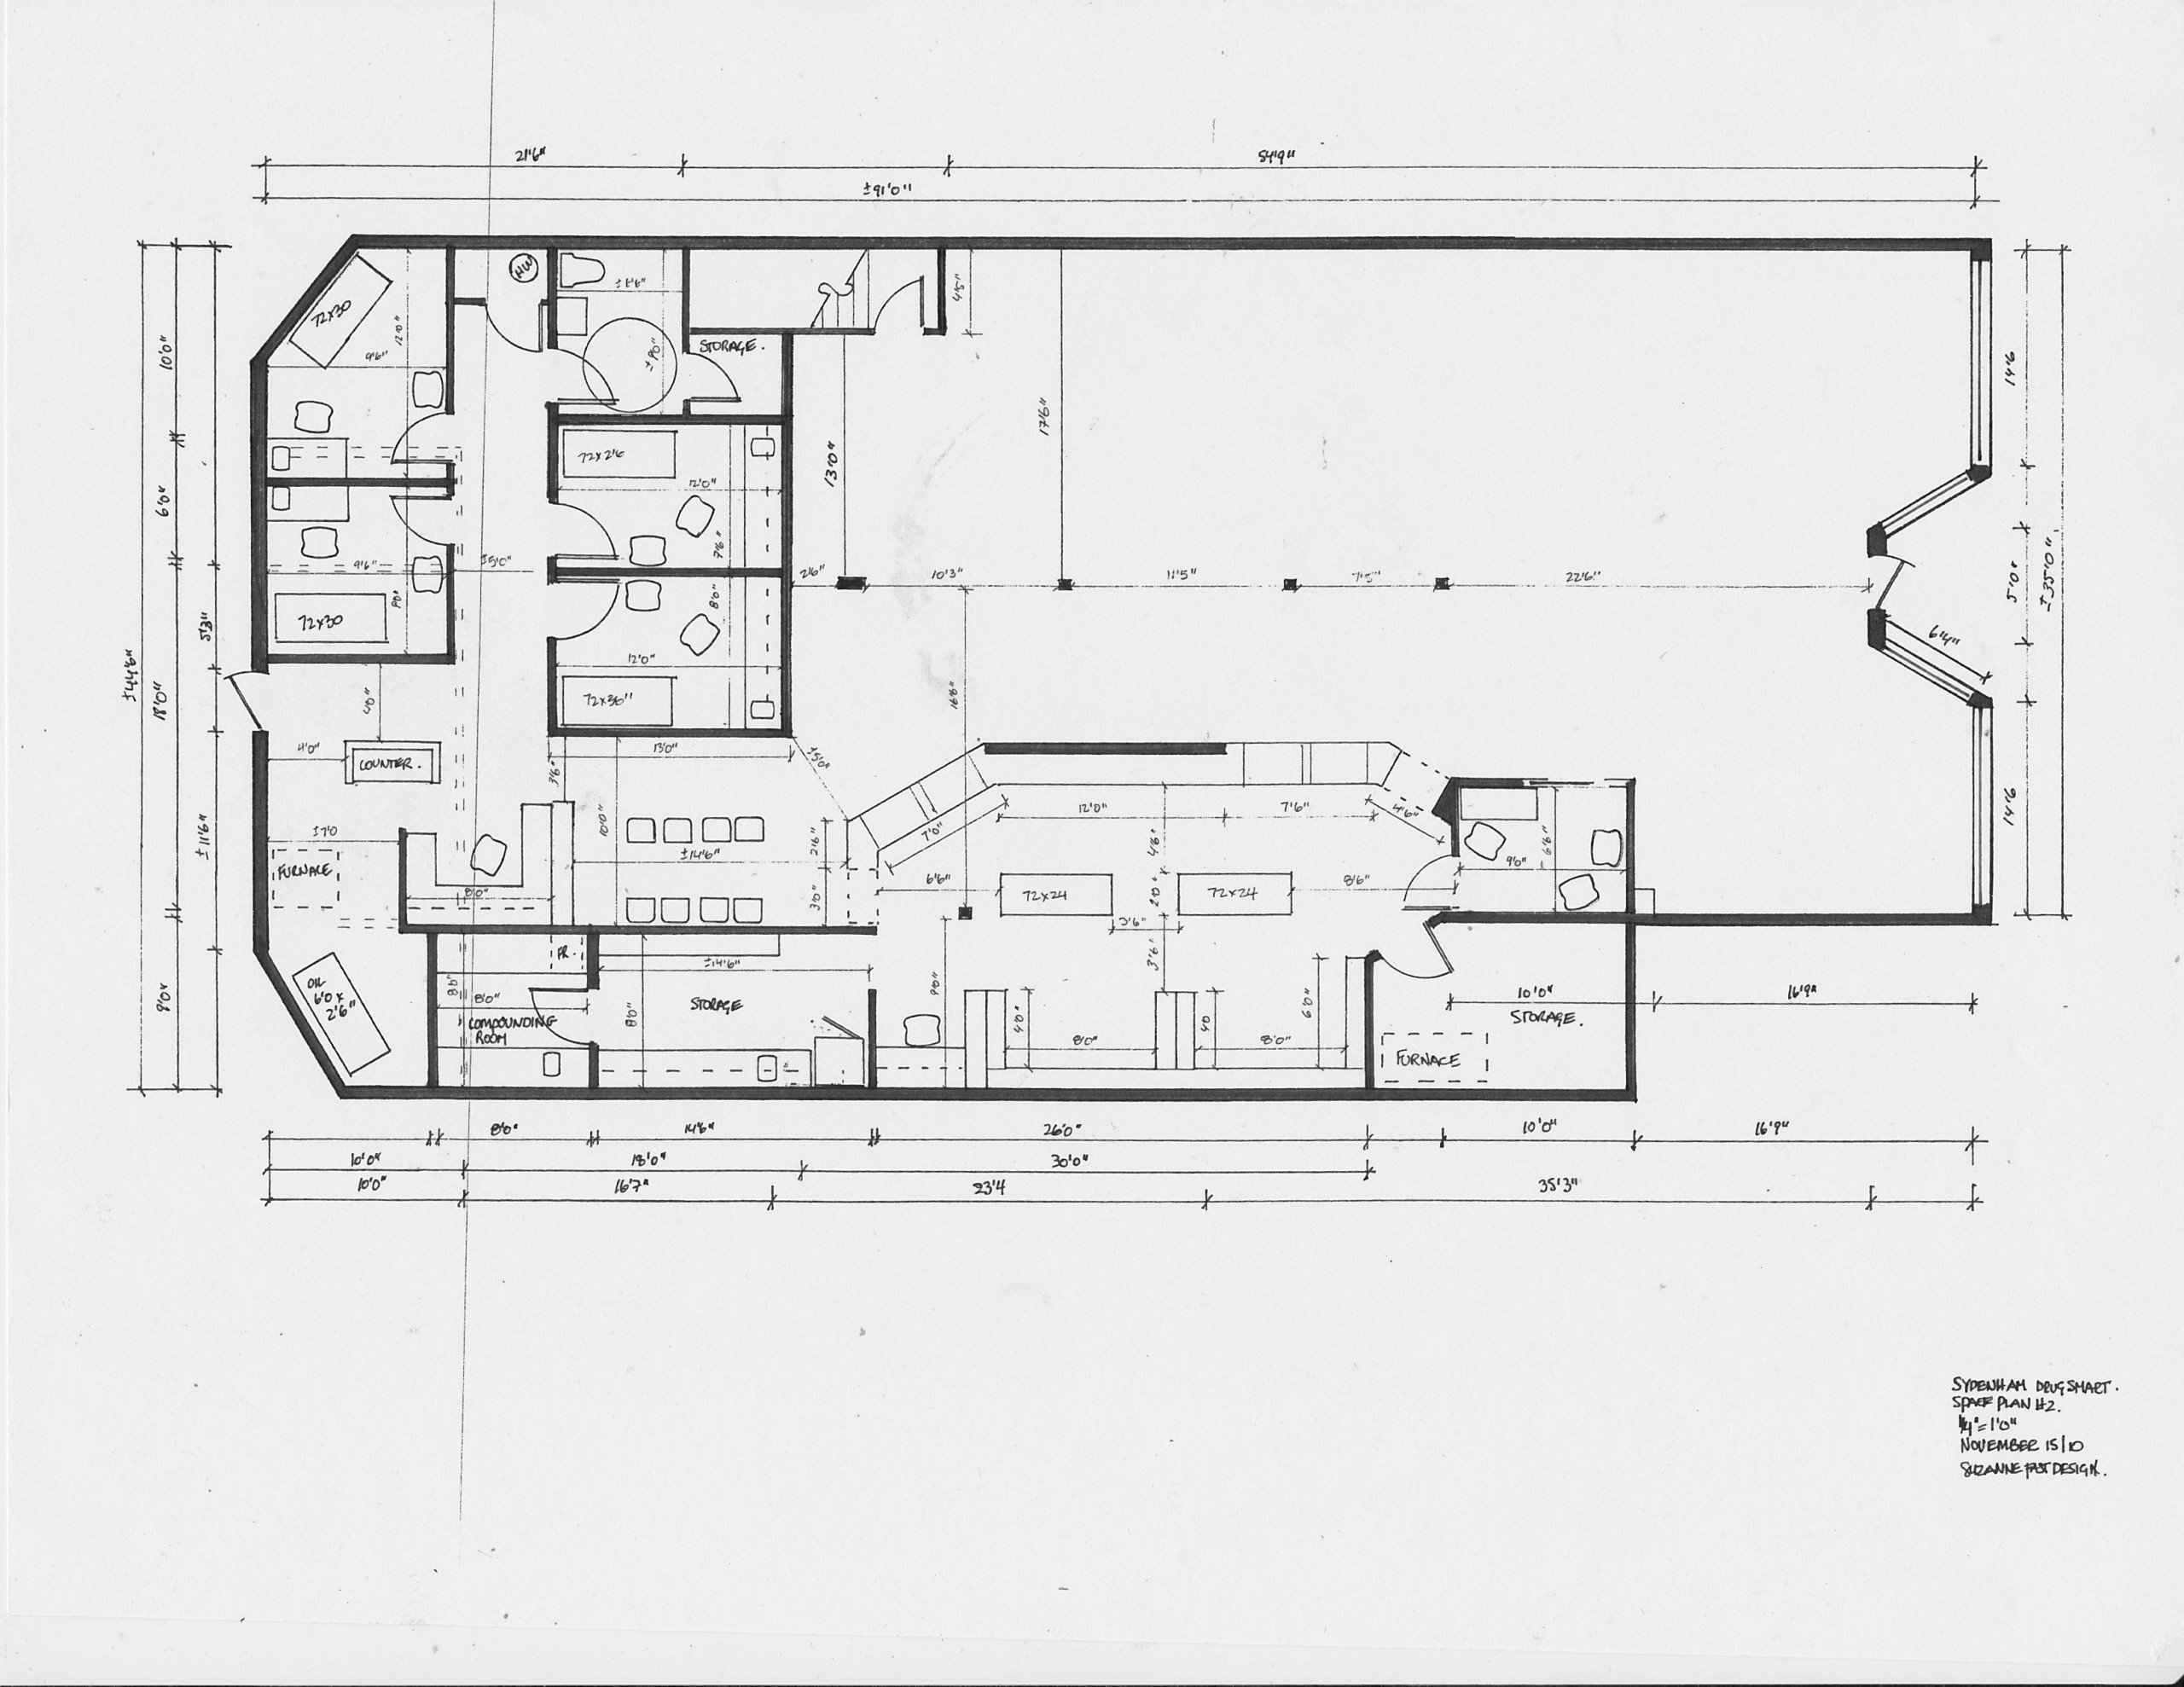 commercial space plans- pharmacy